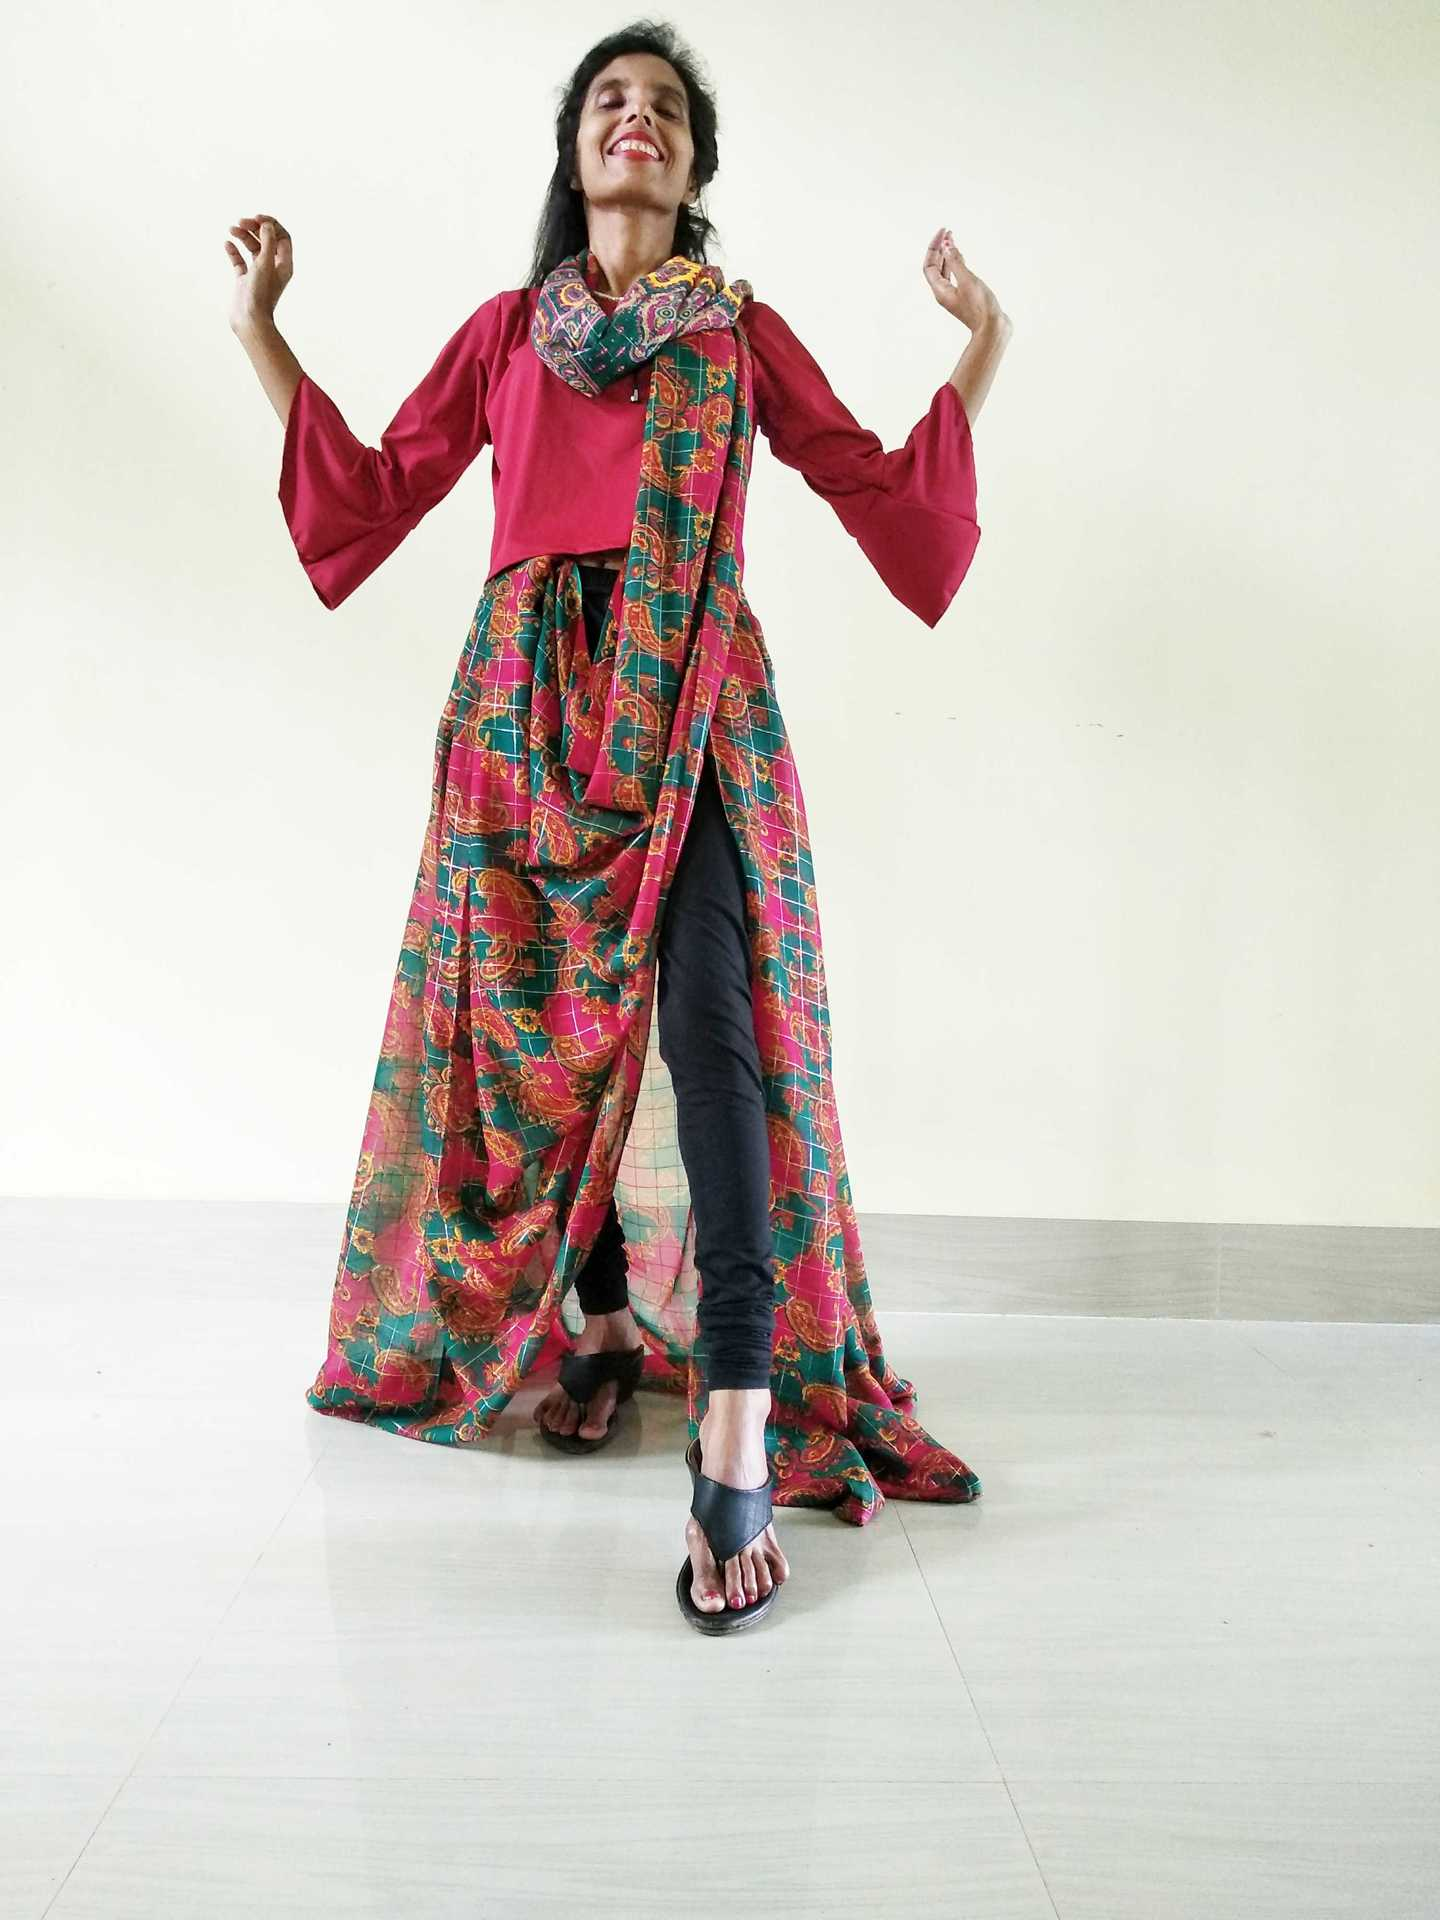 A saree with a leggings image